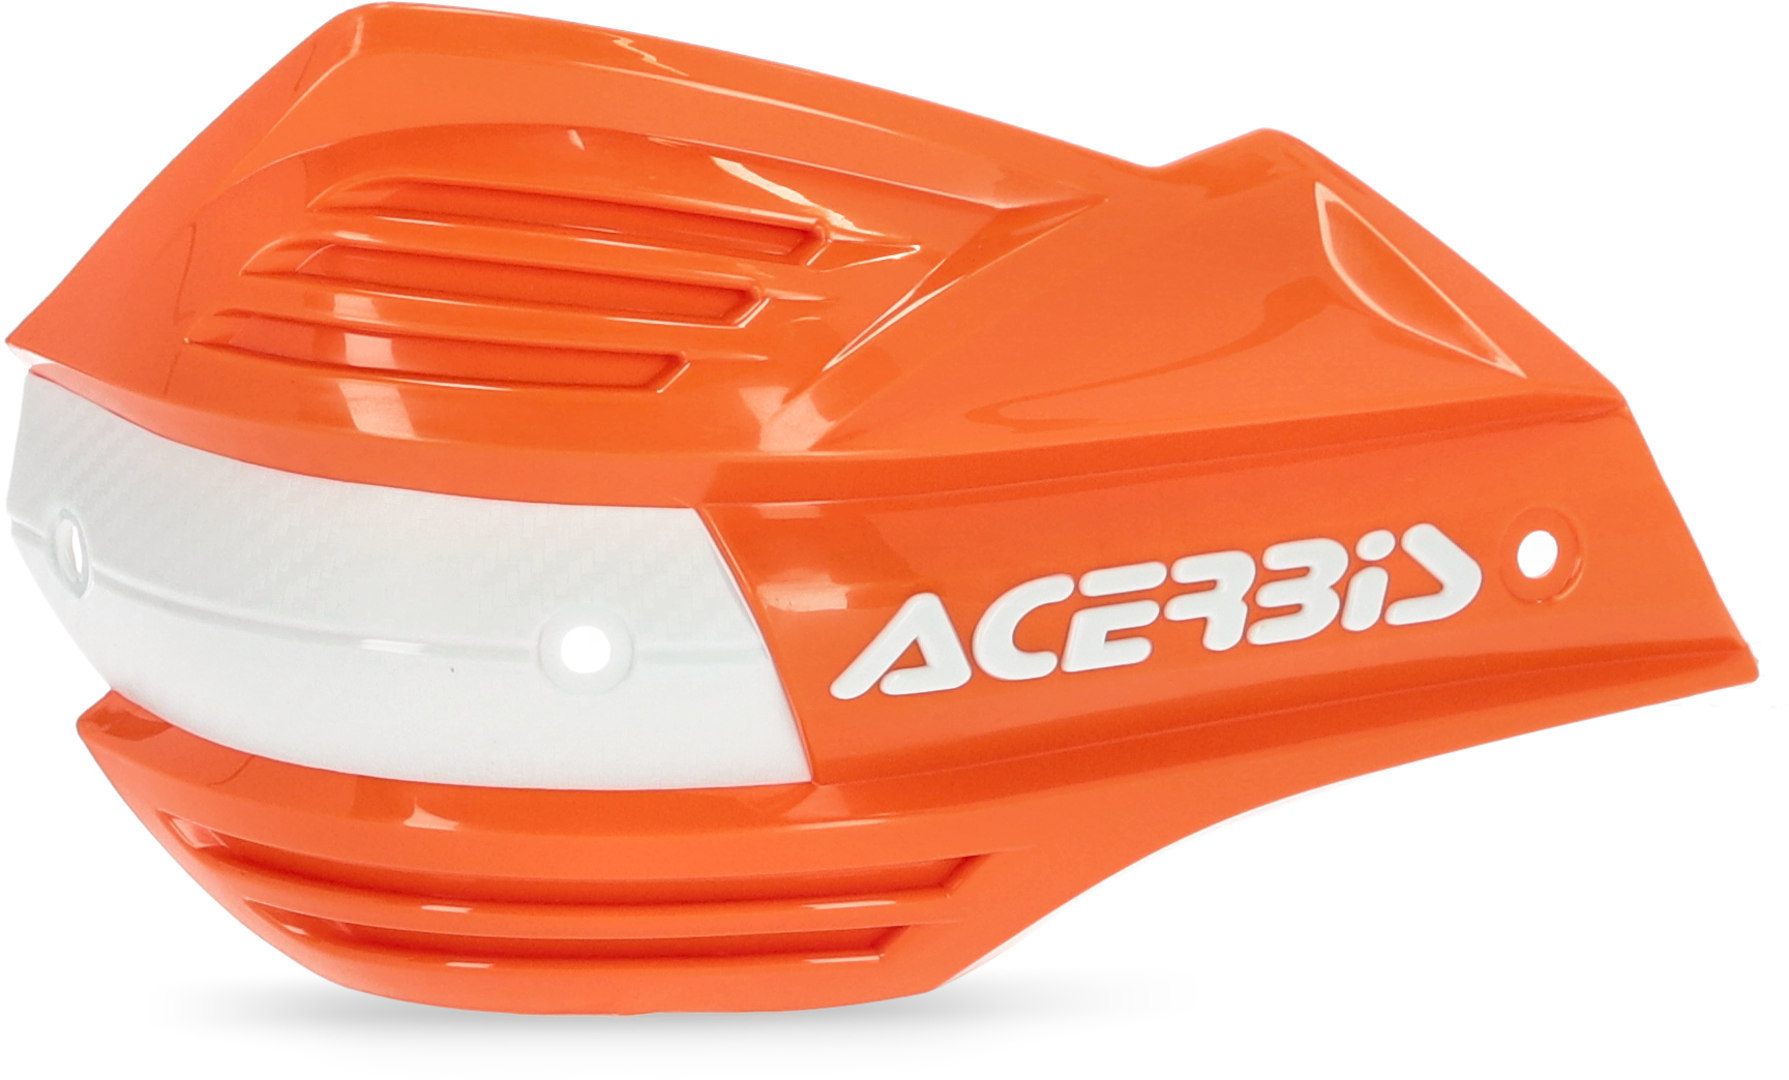 Acerbis X-Factor Handschutzschale, orange, orange